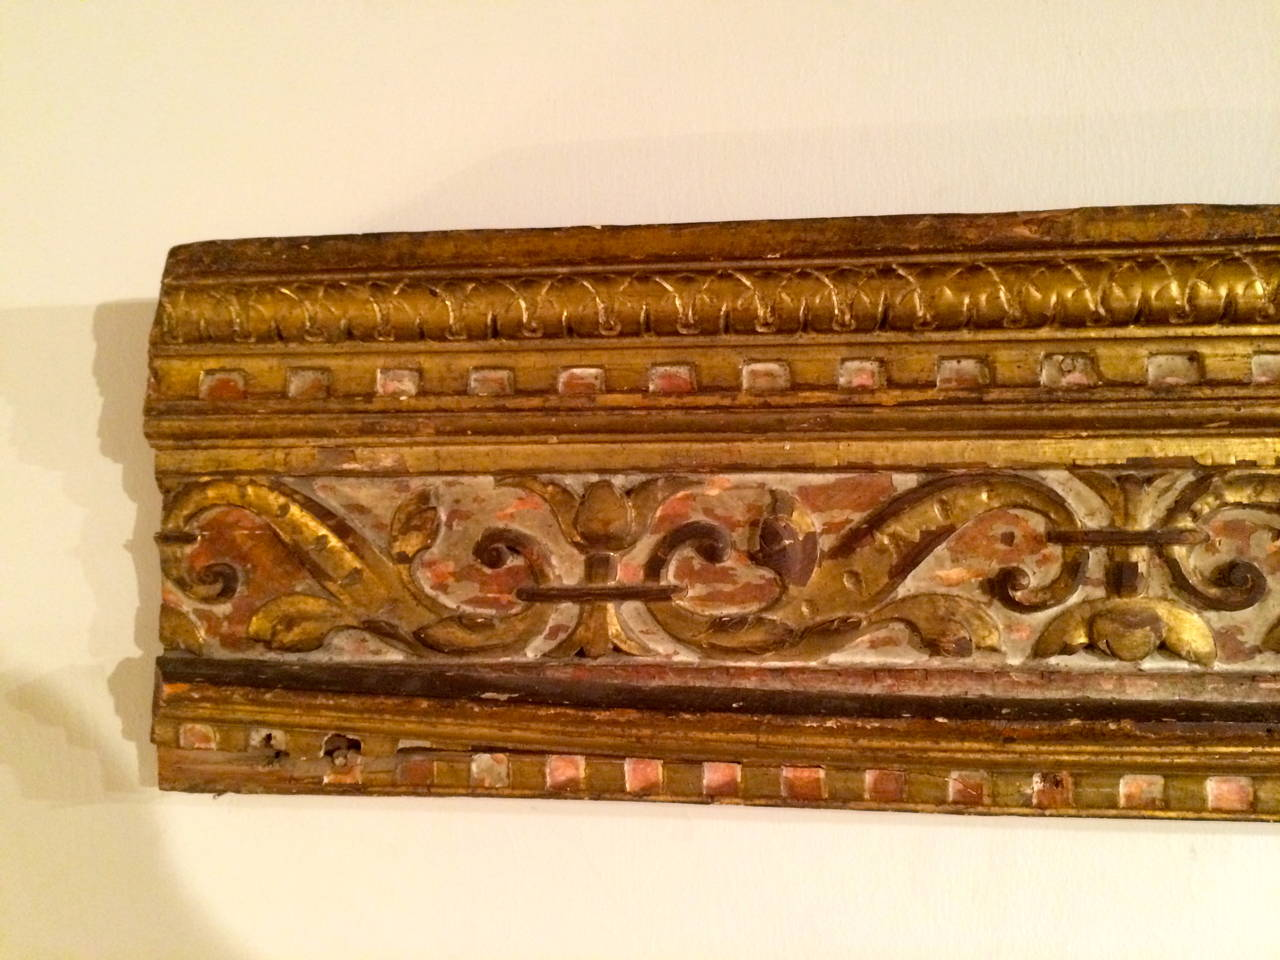 Hand-Carved 18th Century Italian Giltwood Architectural Carving For Sale